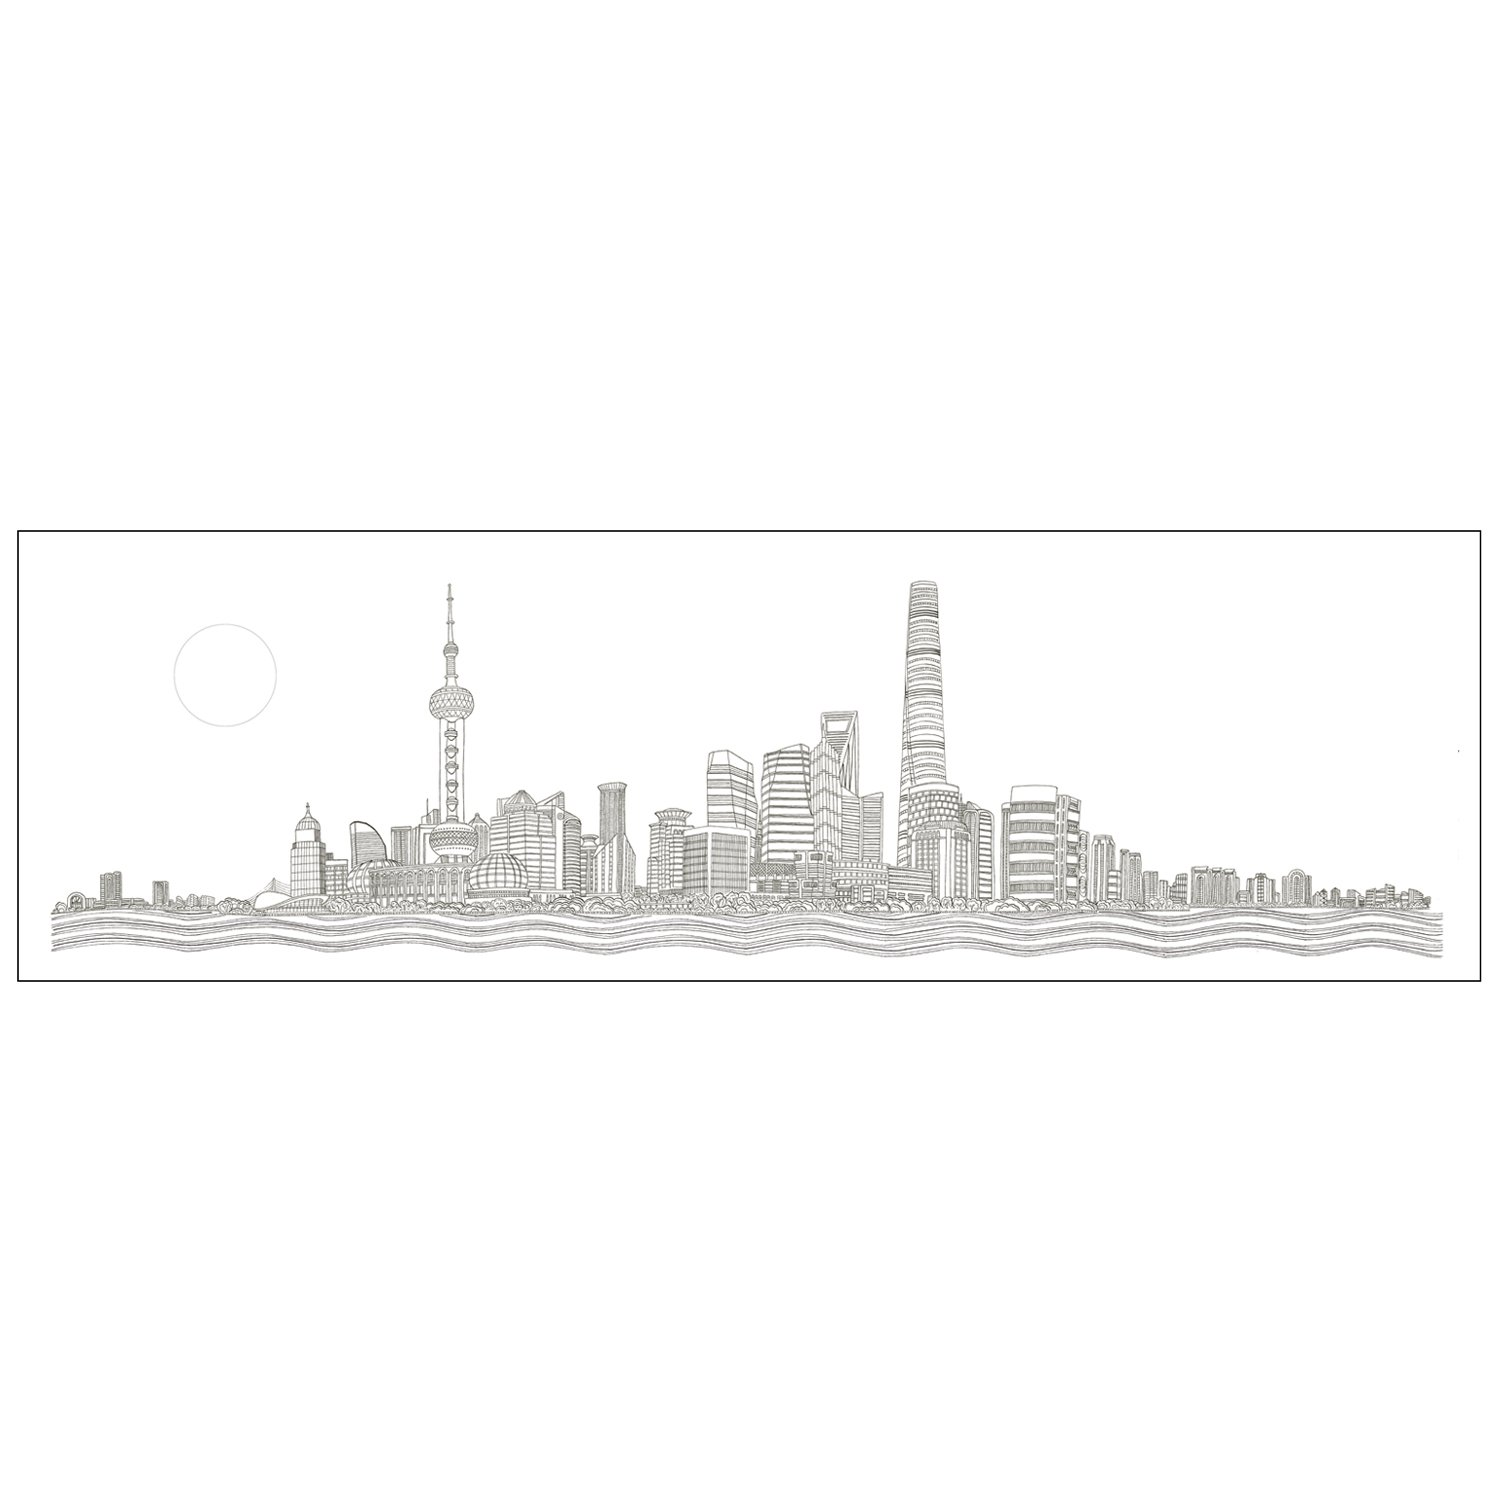 SHANGHAI SKYLINE - LIMITED EDITION PRINTS Printed in the UK, using the highest quality archival paper and highest quality inks. Sizes available: Large – 1500 mm x 430 mm. Edition of 50 Medium – 610 mm x 220 mm. Edition of 250